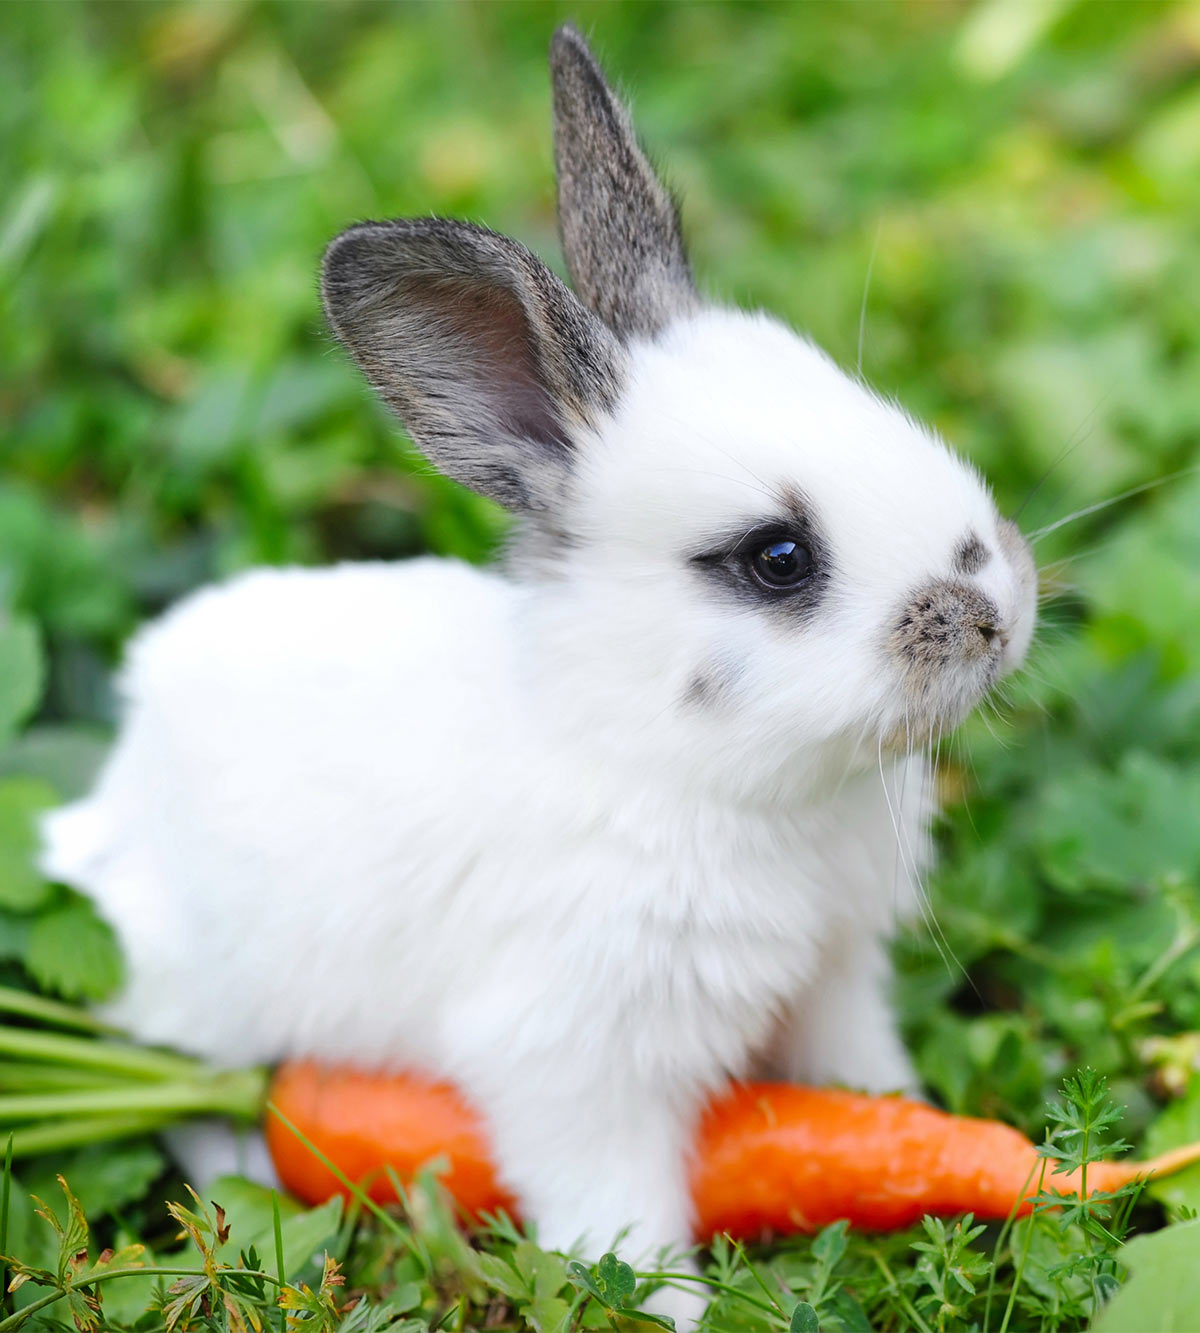 can baby rabbits eat carrots